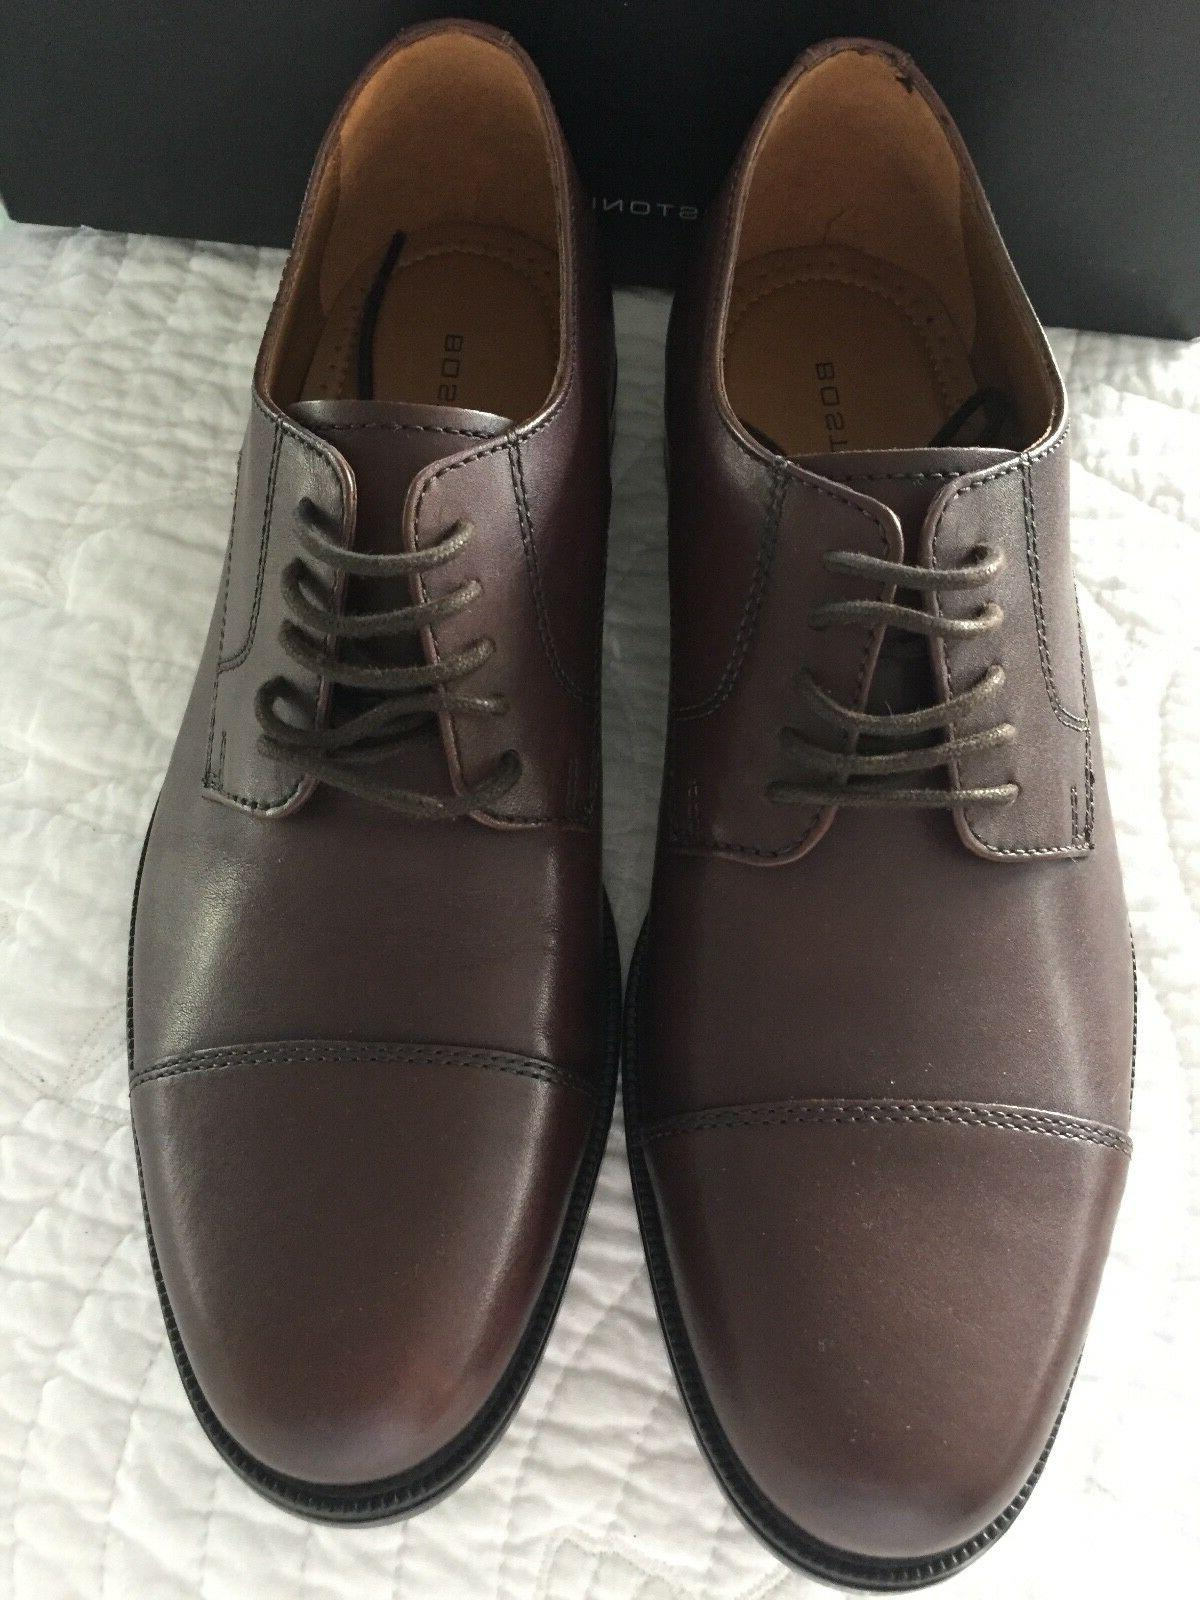 kinnon cap lace up oxford shoes leather